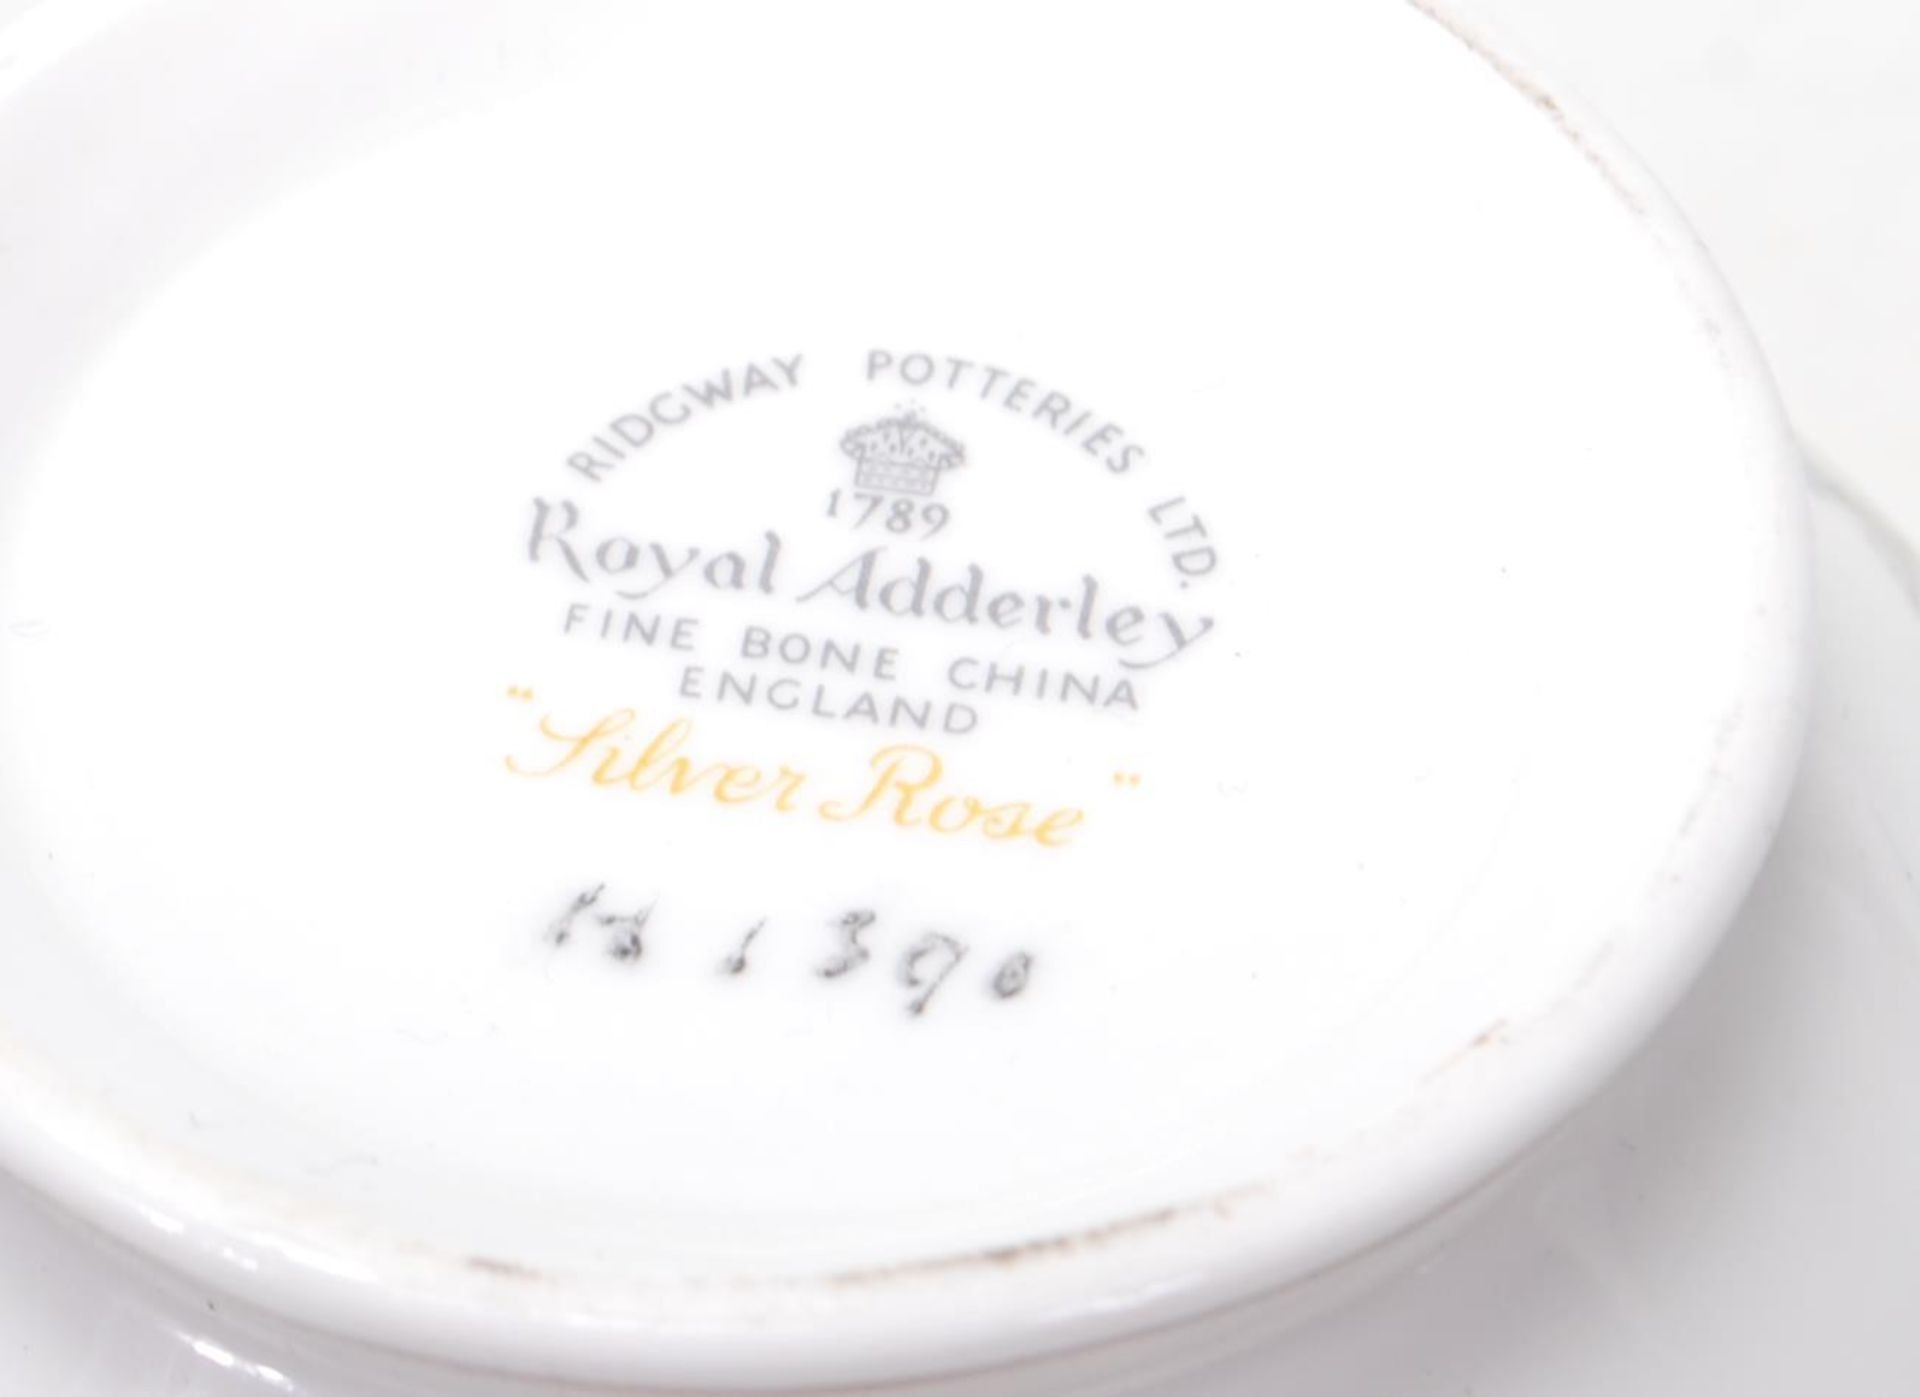 ROYAL ADDERLEY SILVER ROSE TEA SERVICE FOR SIX - Image 7 of 7